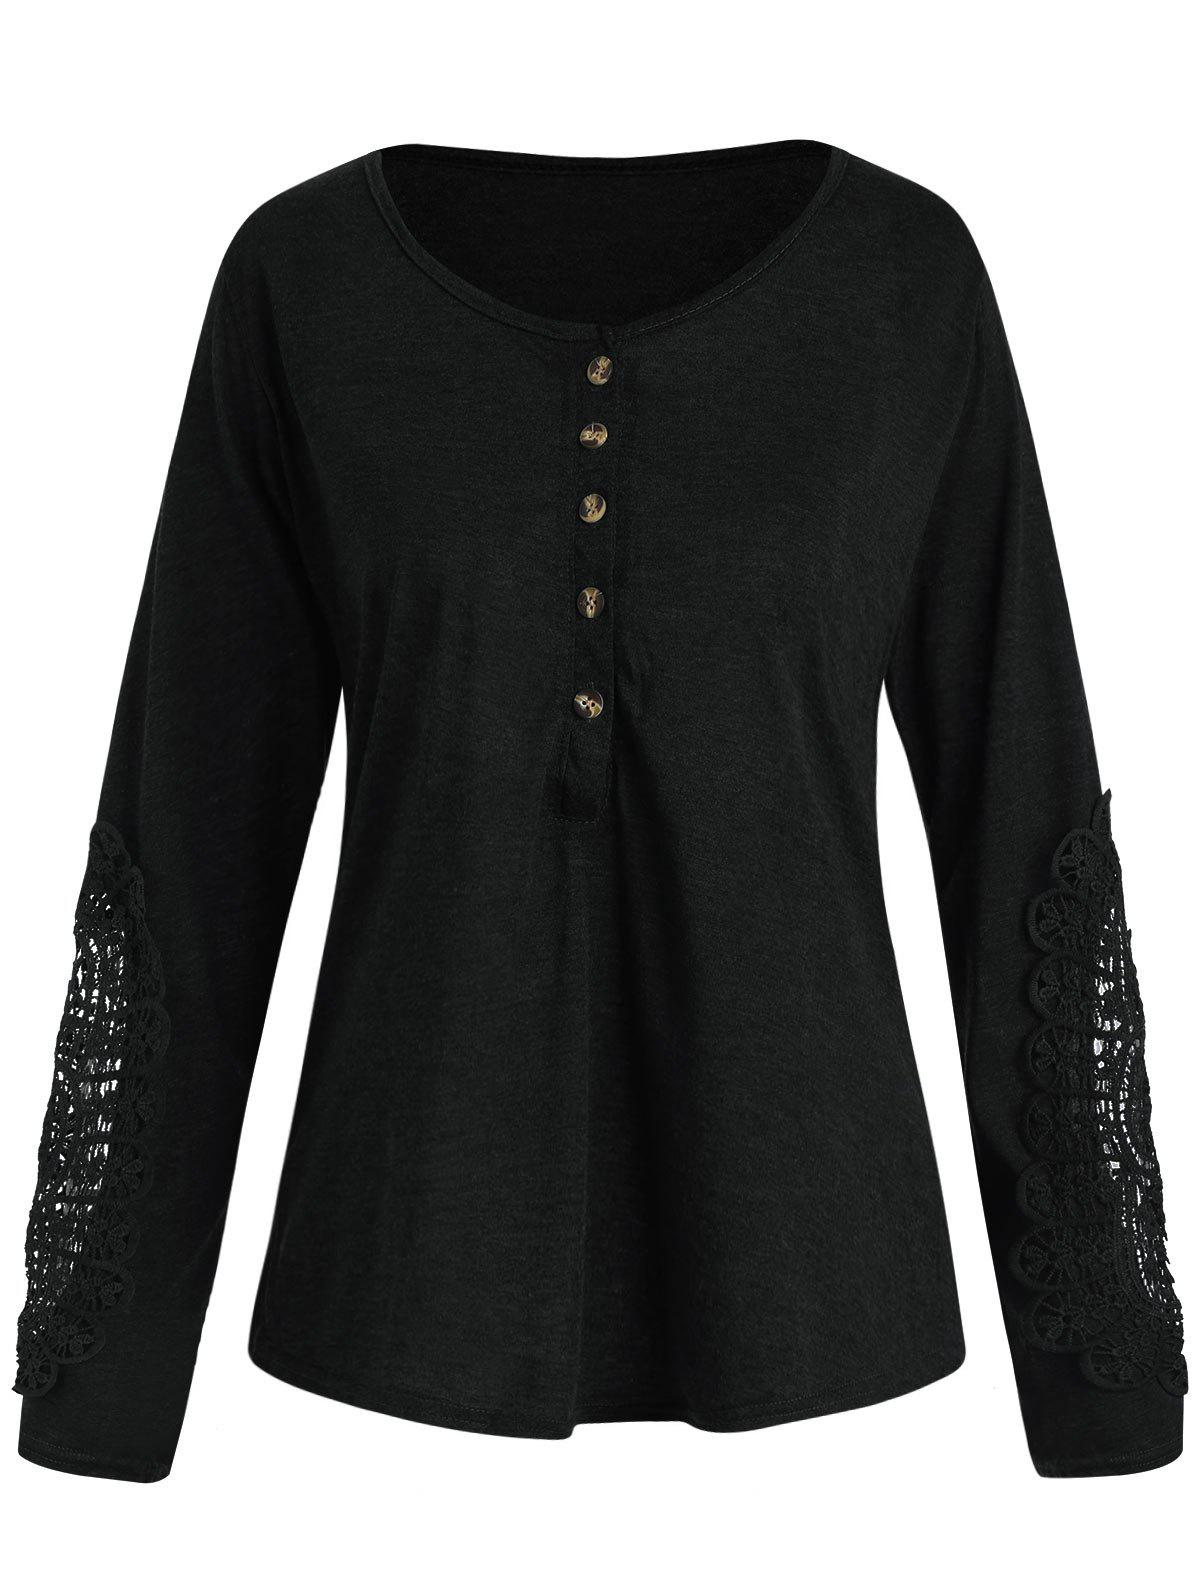 Online Casual Scoop Neck Lace Splicing Long Sleeve T-Shirt For Women